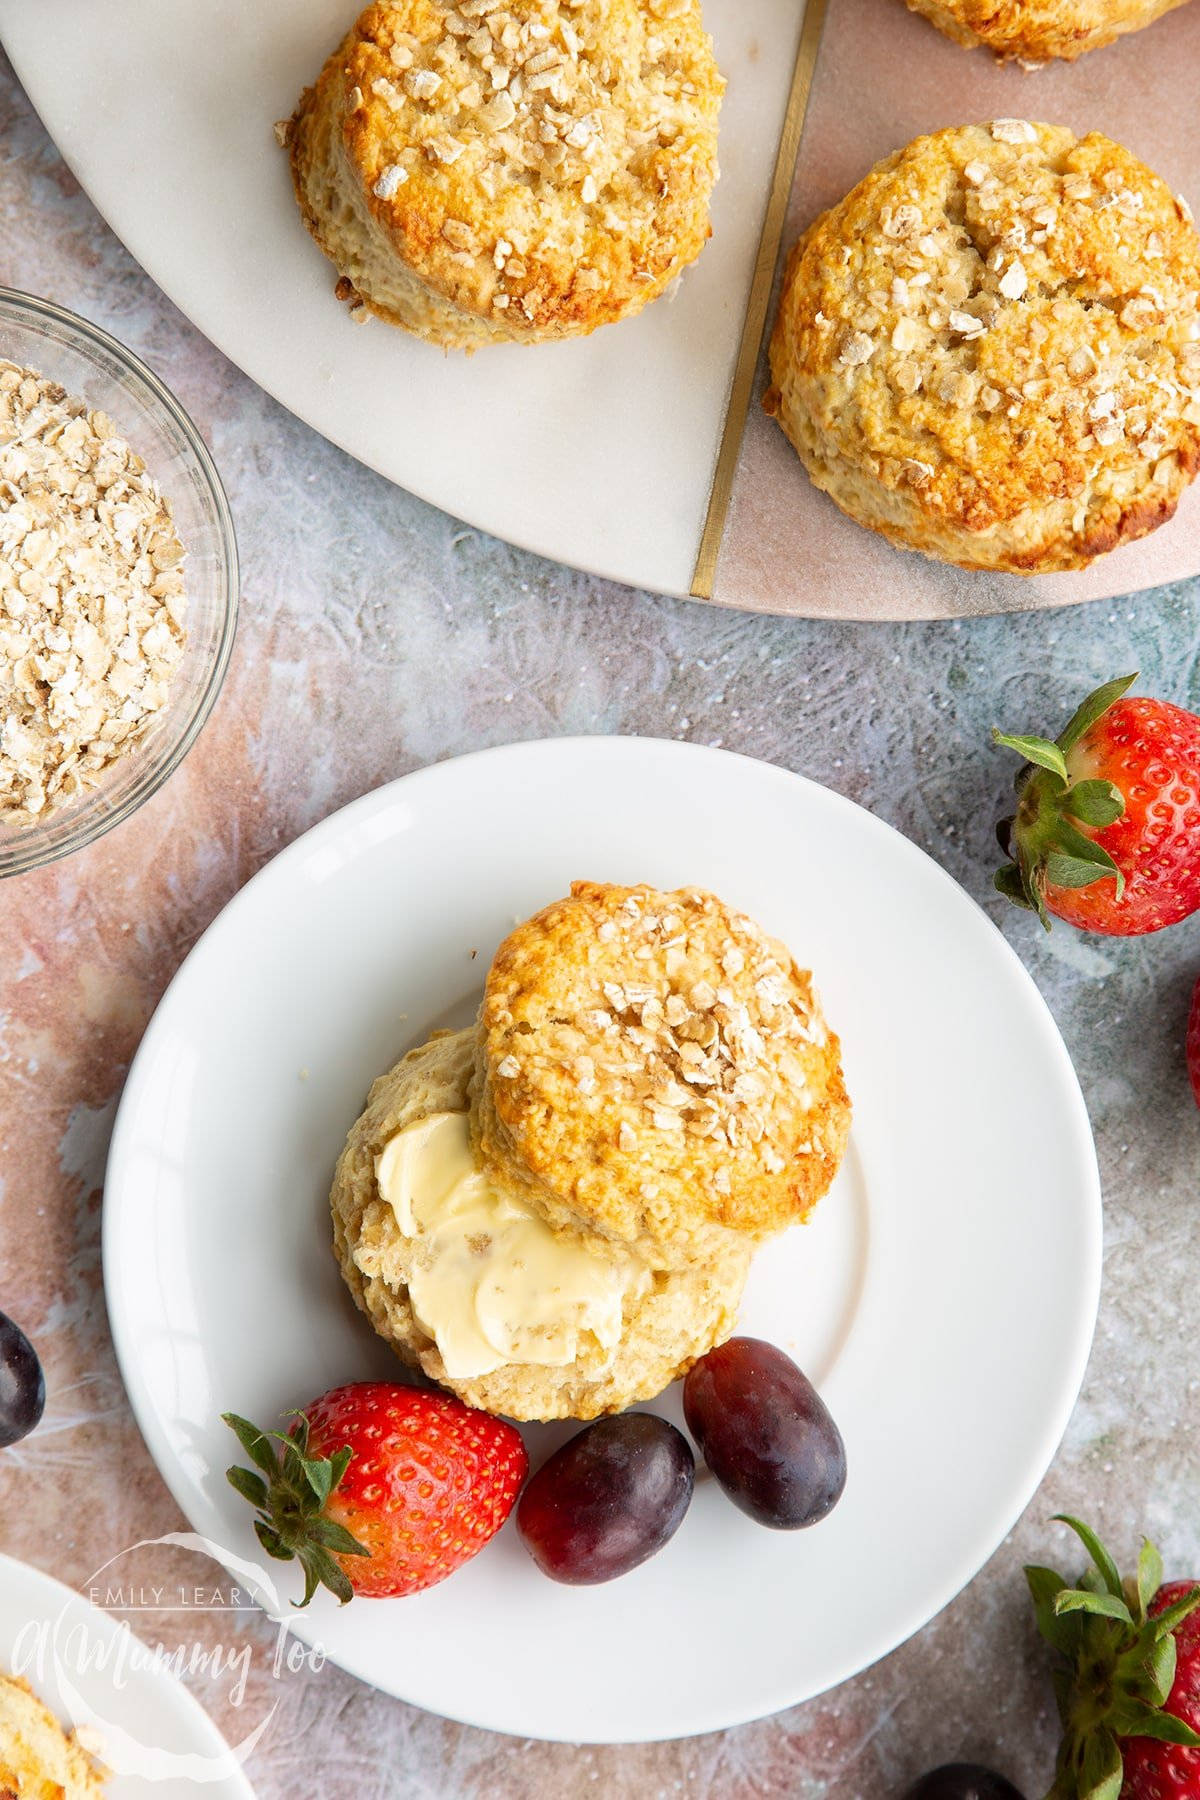 An oatmeal scone on a white plate with some fruit. The scone has been split and buttered. Shown from above.